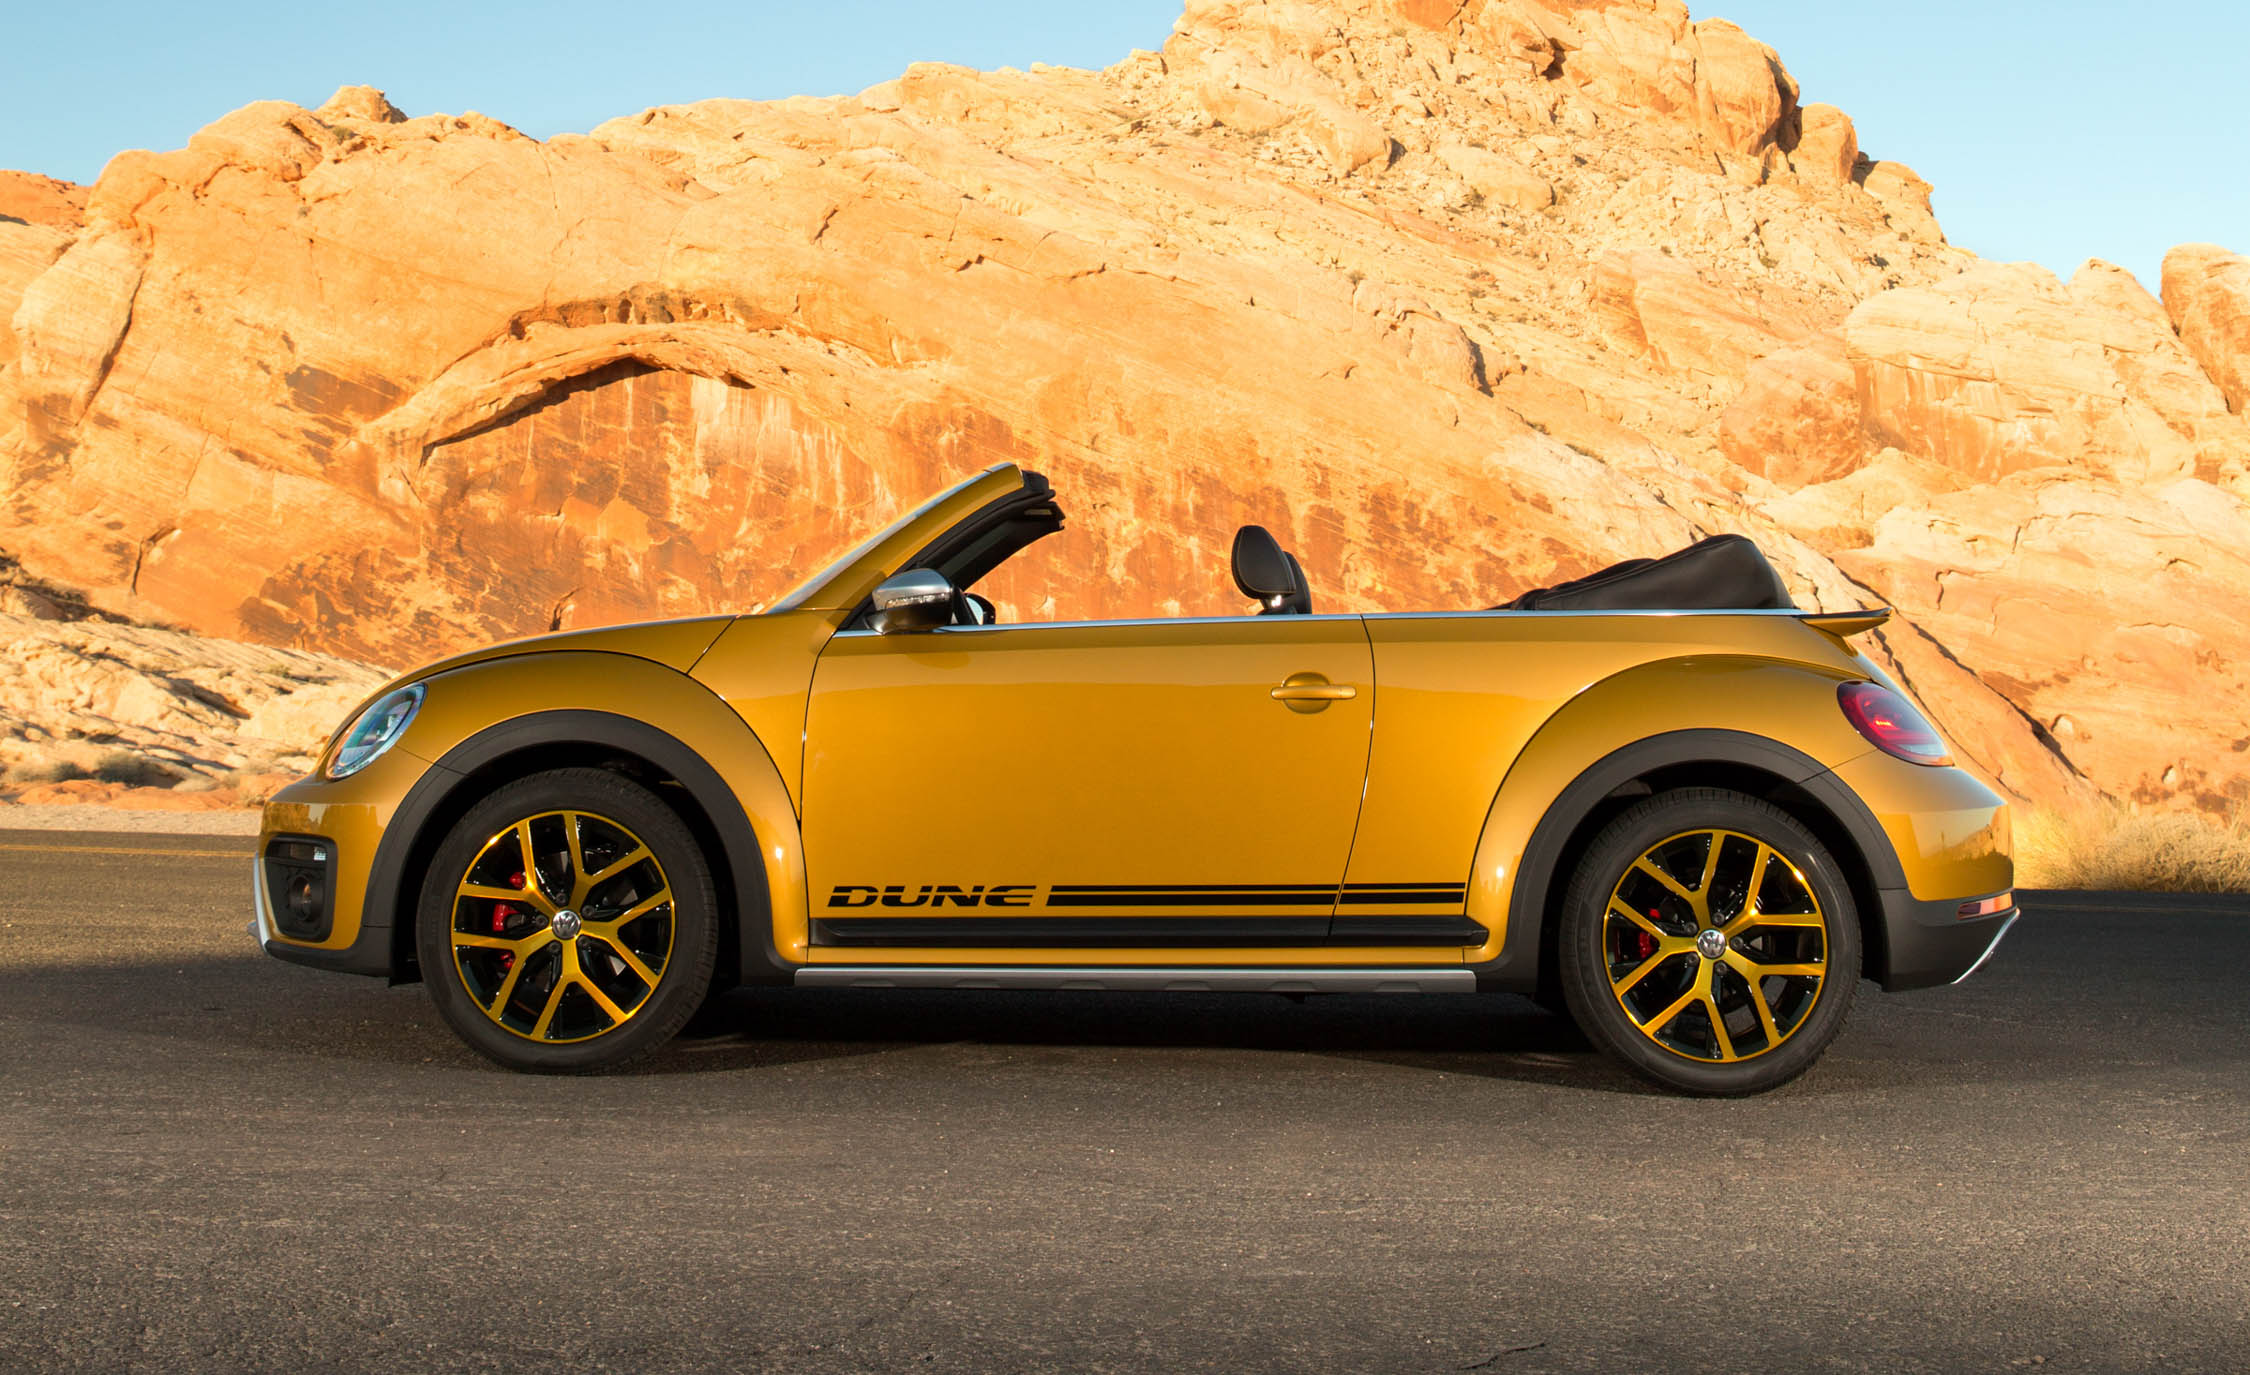 2016 Volkswagen Beetle Dune Convertible Exterior Full Side (Photo 5 of 32)